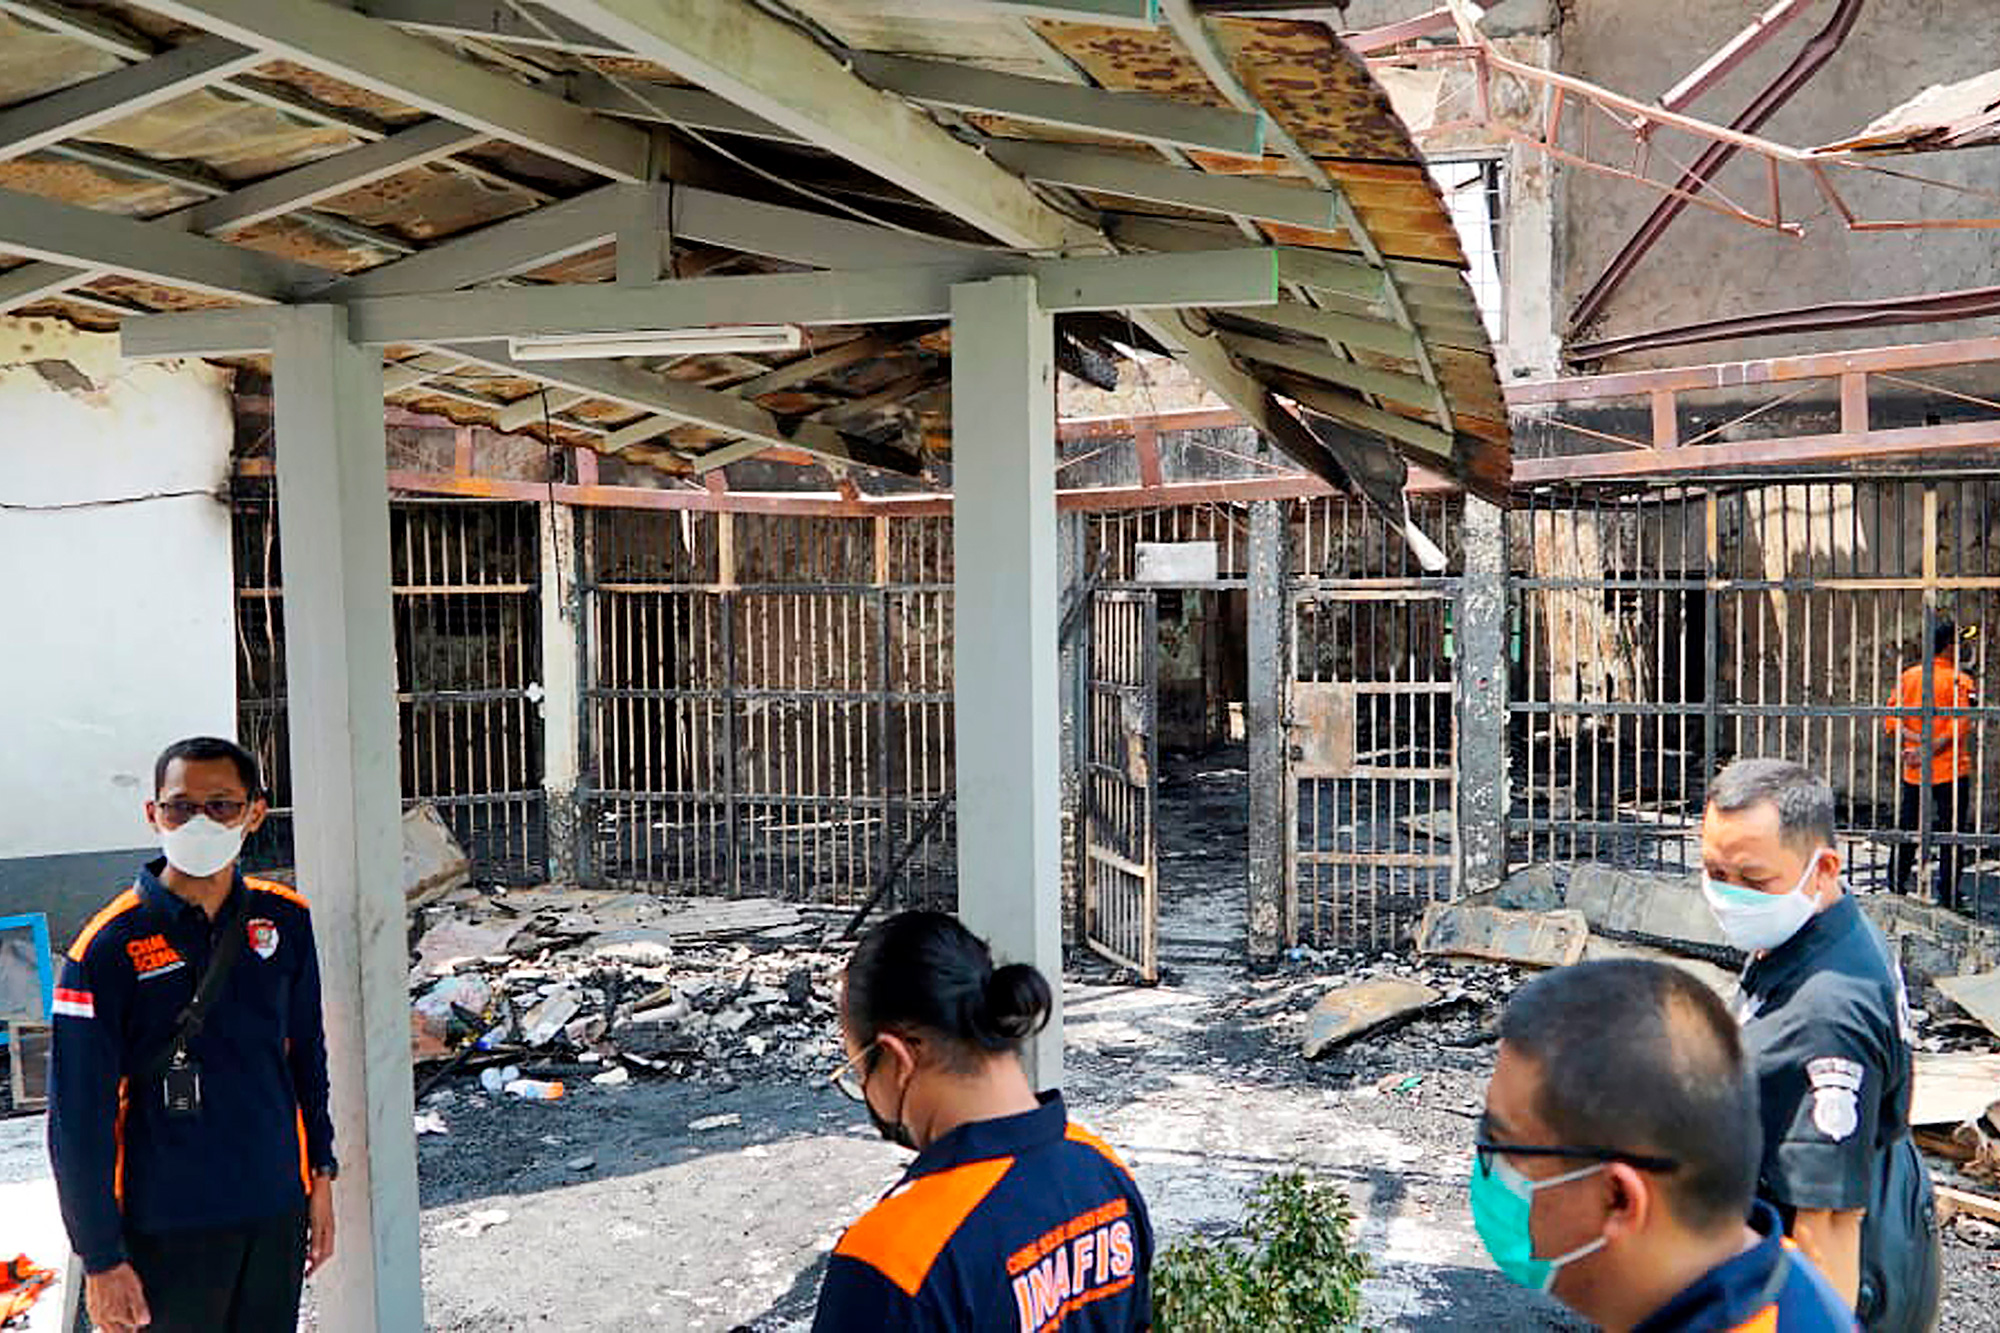 Fire in overcrowded Indonesian prison kills 41 people